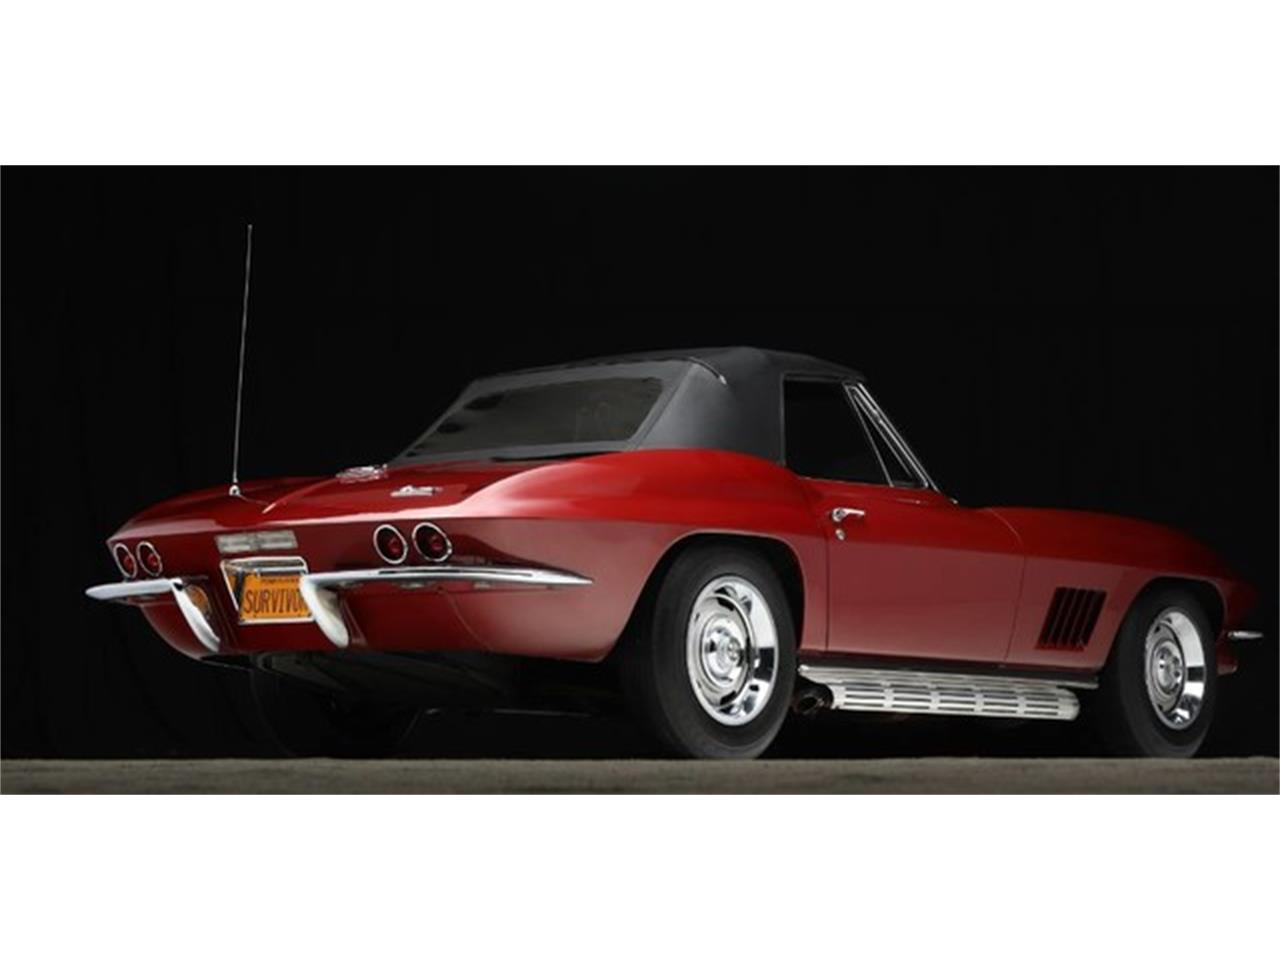 Large Picture of Classic '67 Corvette located in Clifton Park New York Auction Vehicle - Q1X7